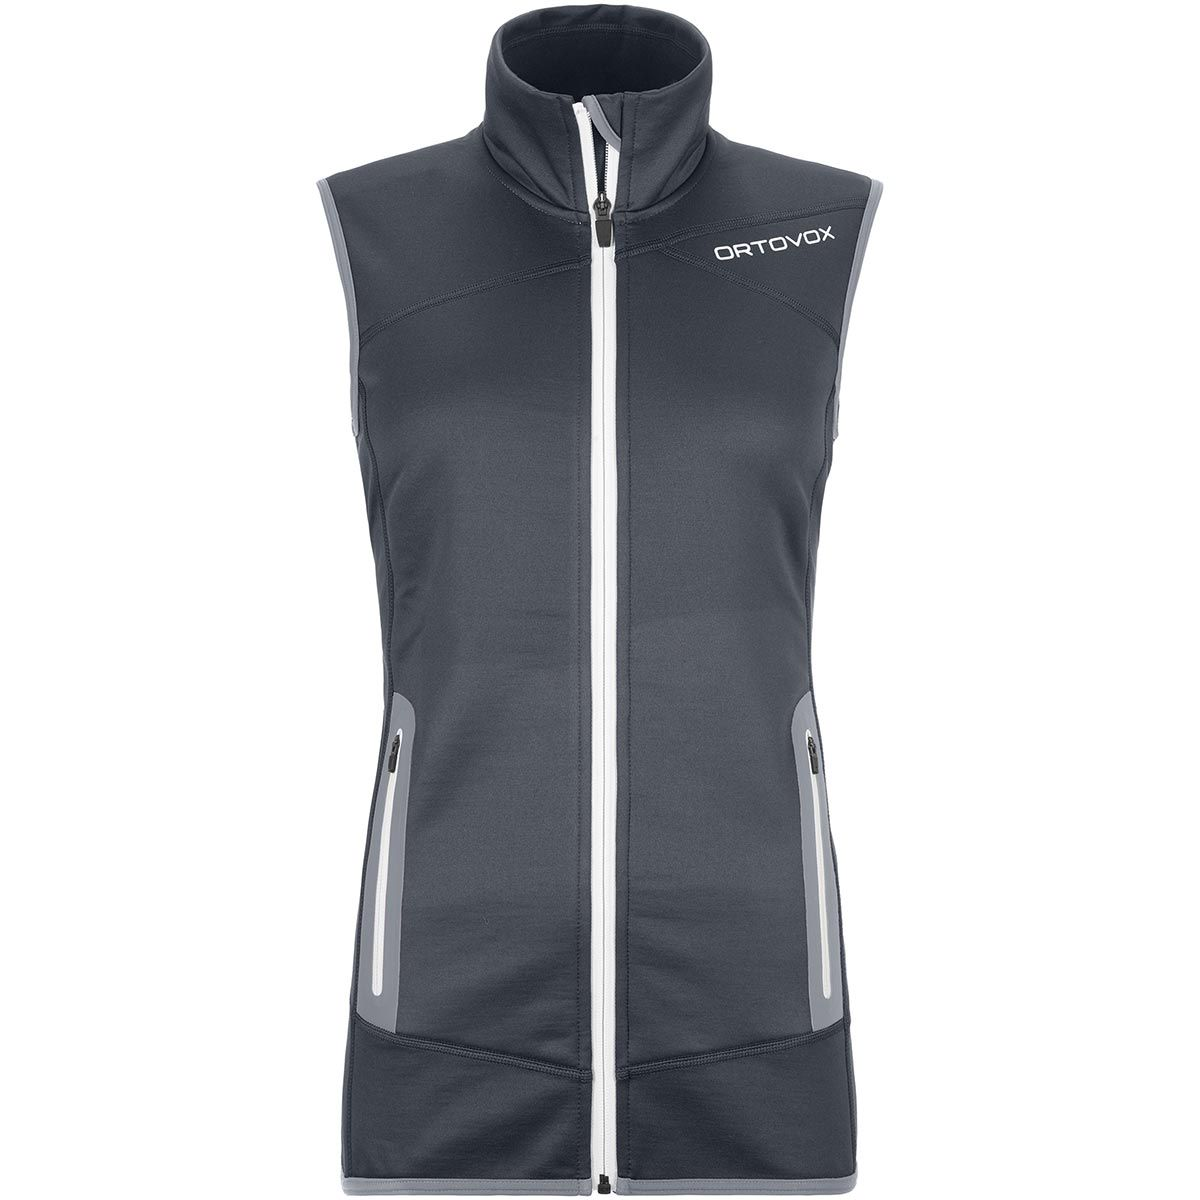 Ortovox Damen Fleece Weste (Größe XL, Grau) | Fleecewesten > Damen